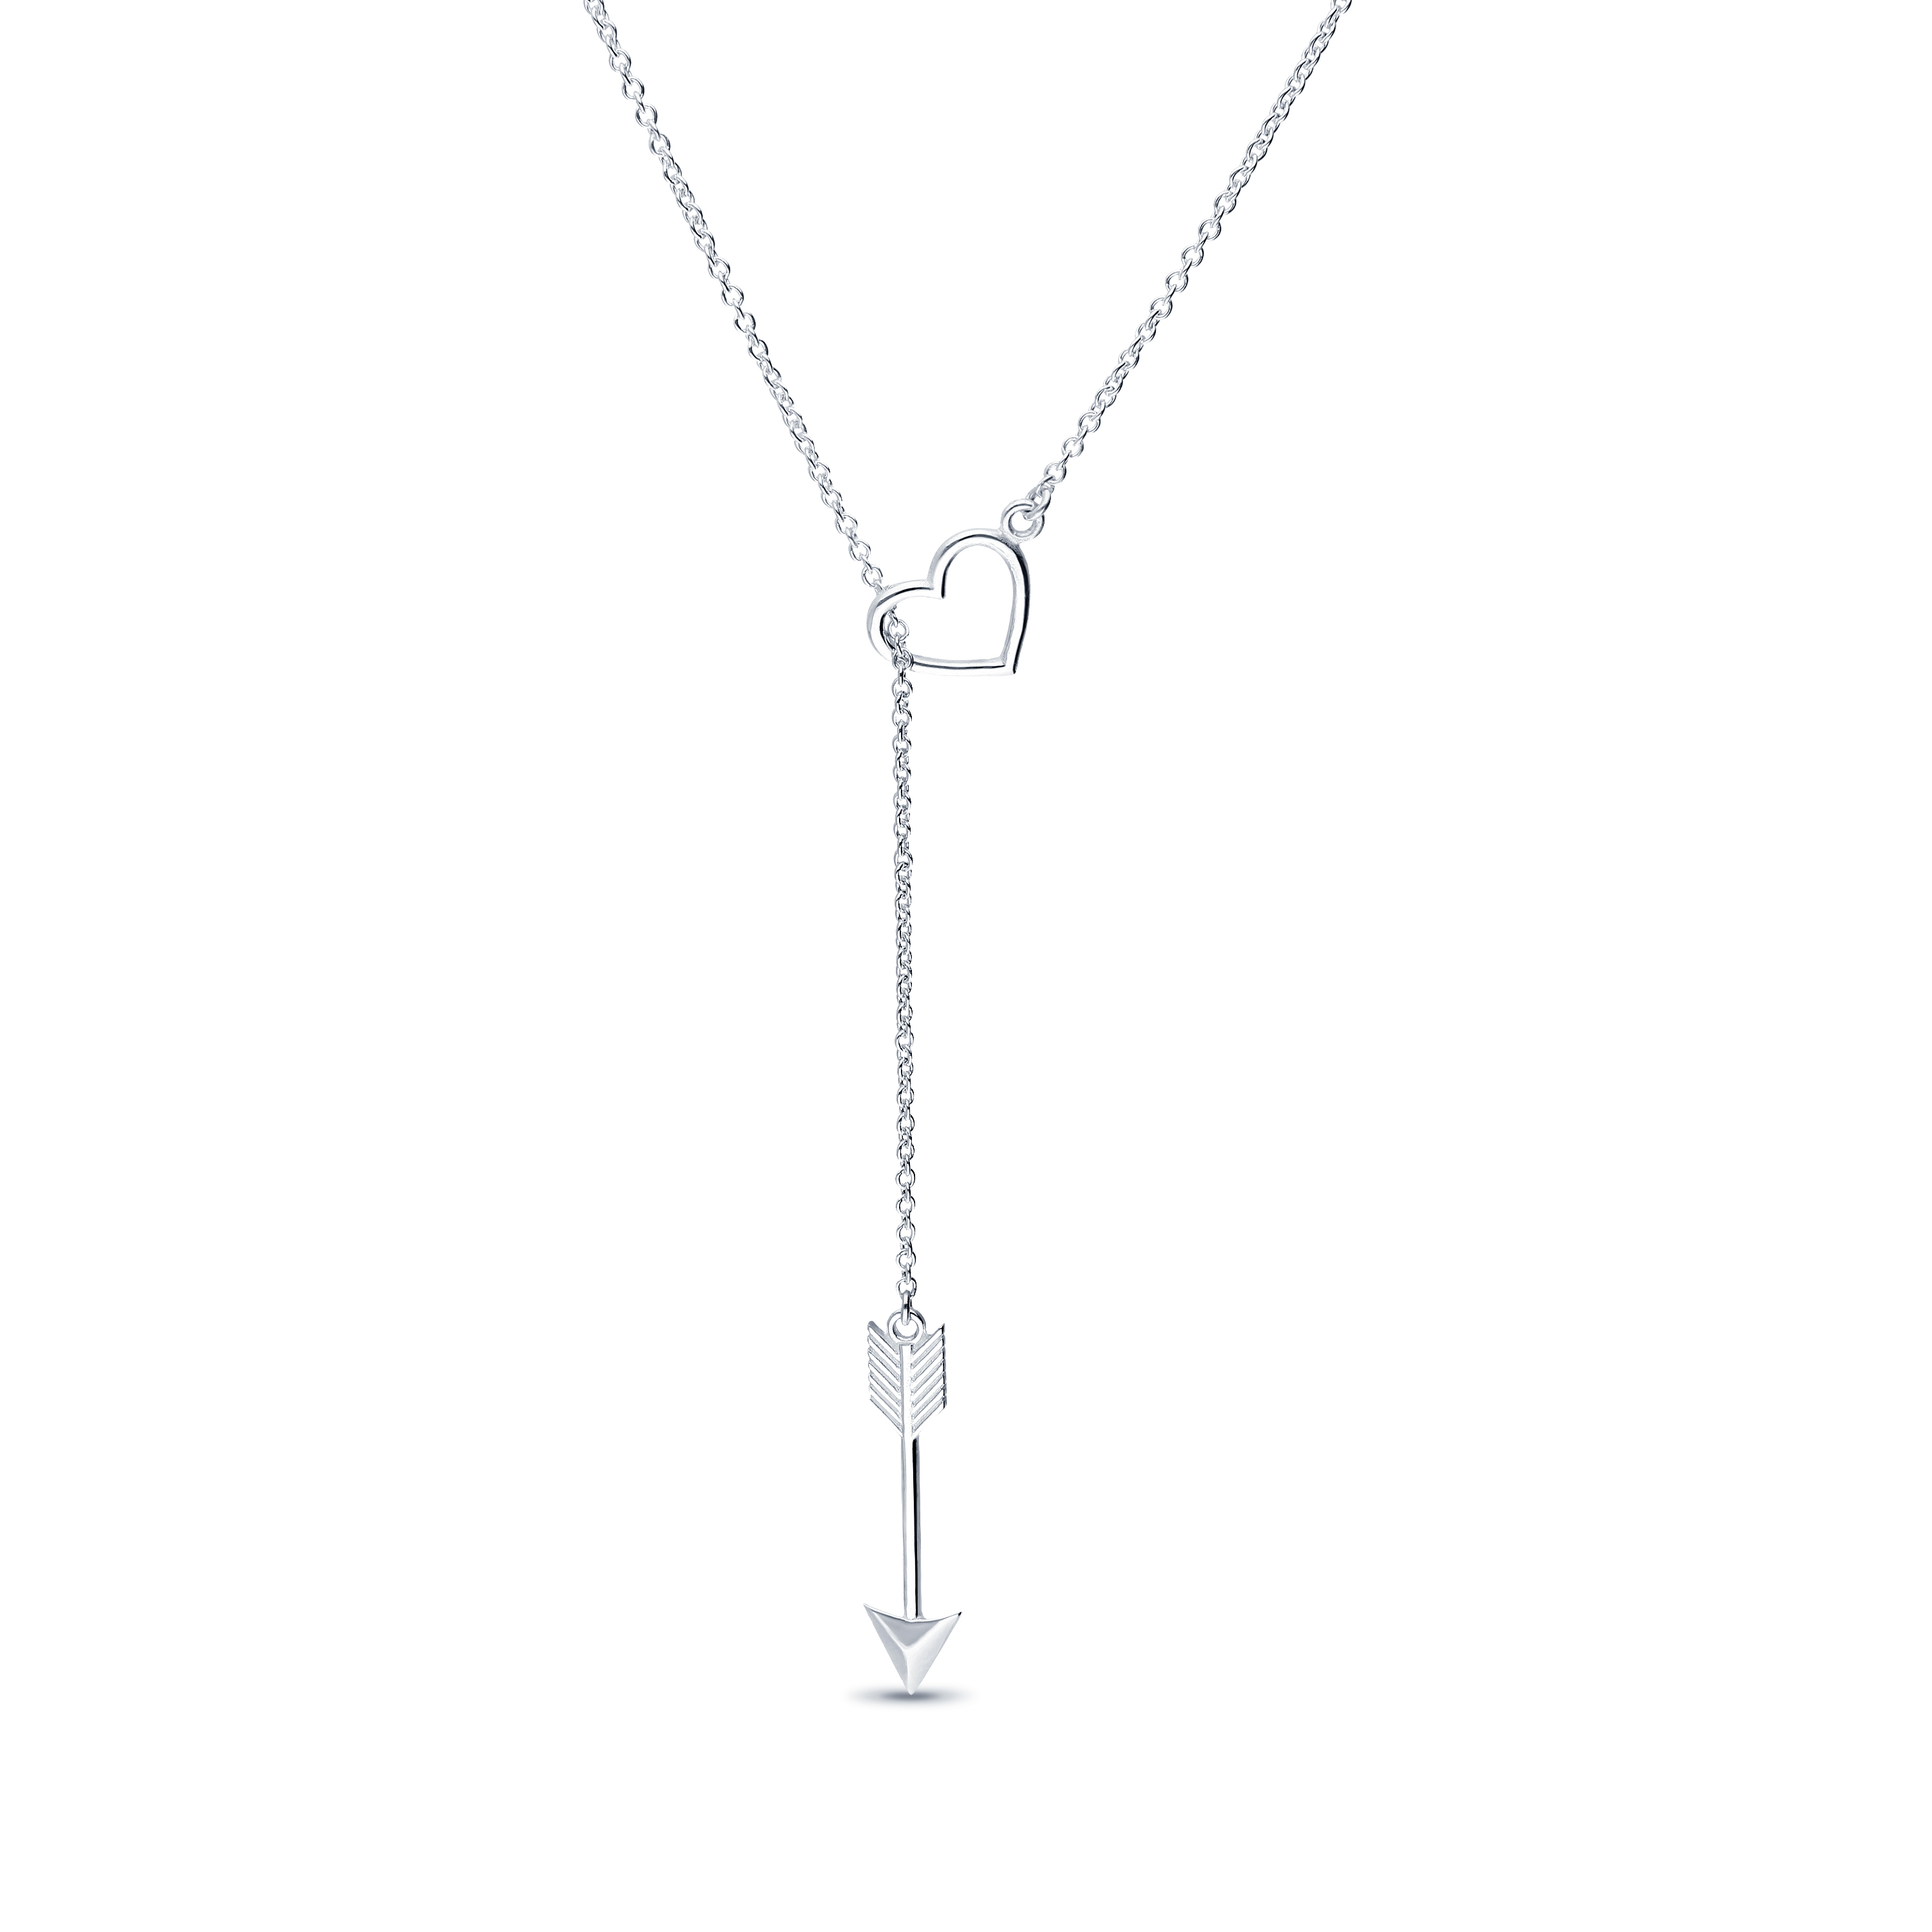 1063-1307 - 925 Sterling Silver Arrow and Heart Necklace